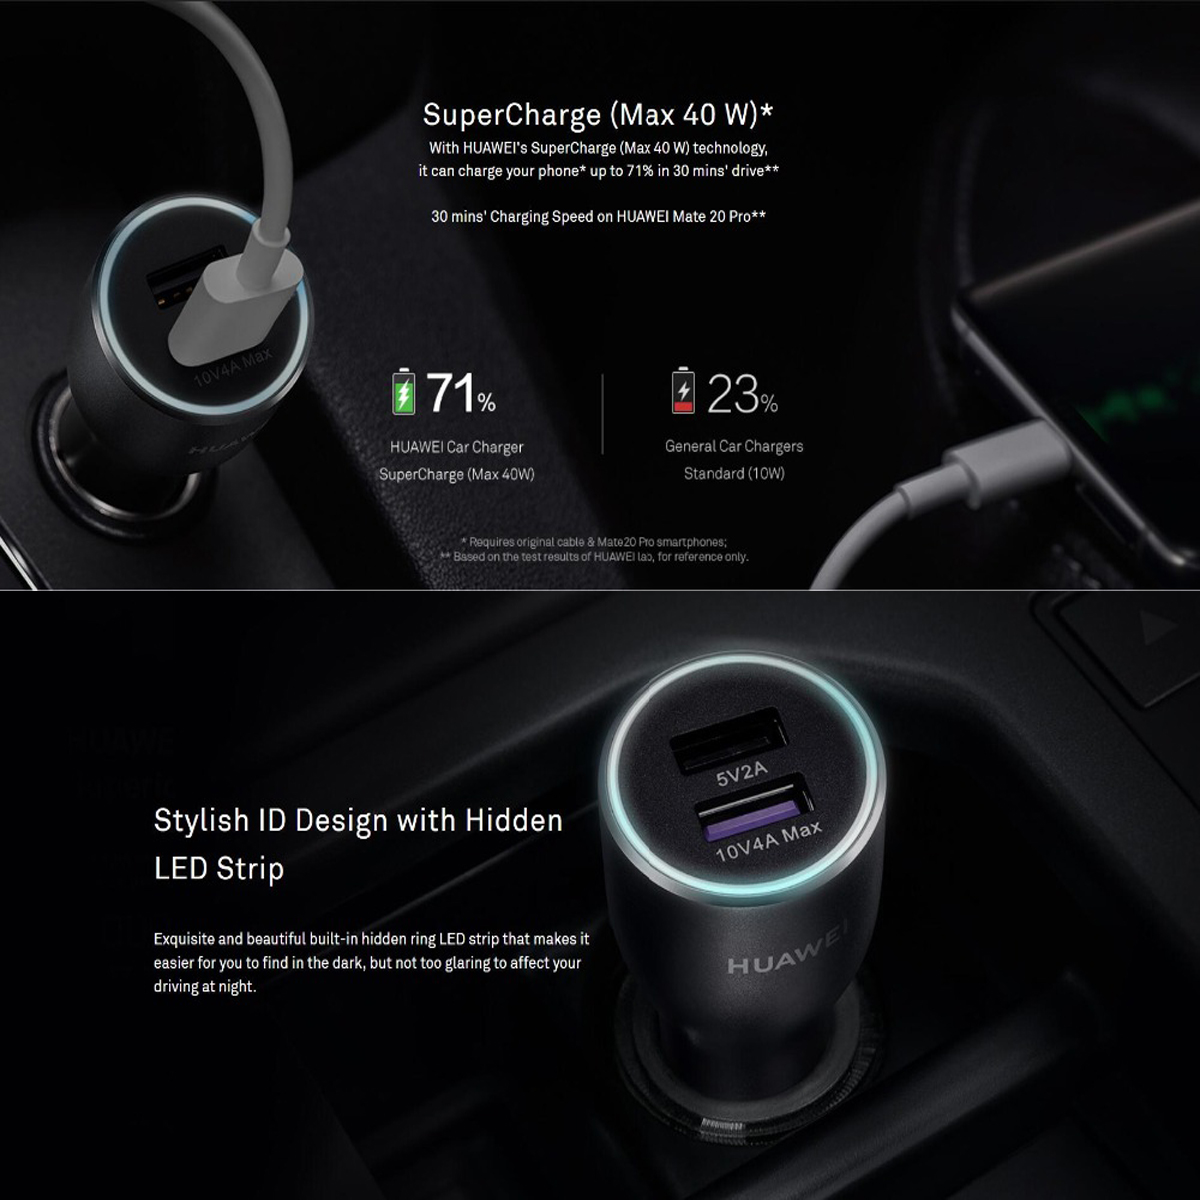 Huawei 40W SuperCharge Car Charger 40W Max 10V 4A Dual USB 5A Type C Cable Included